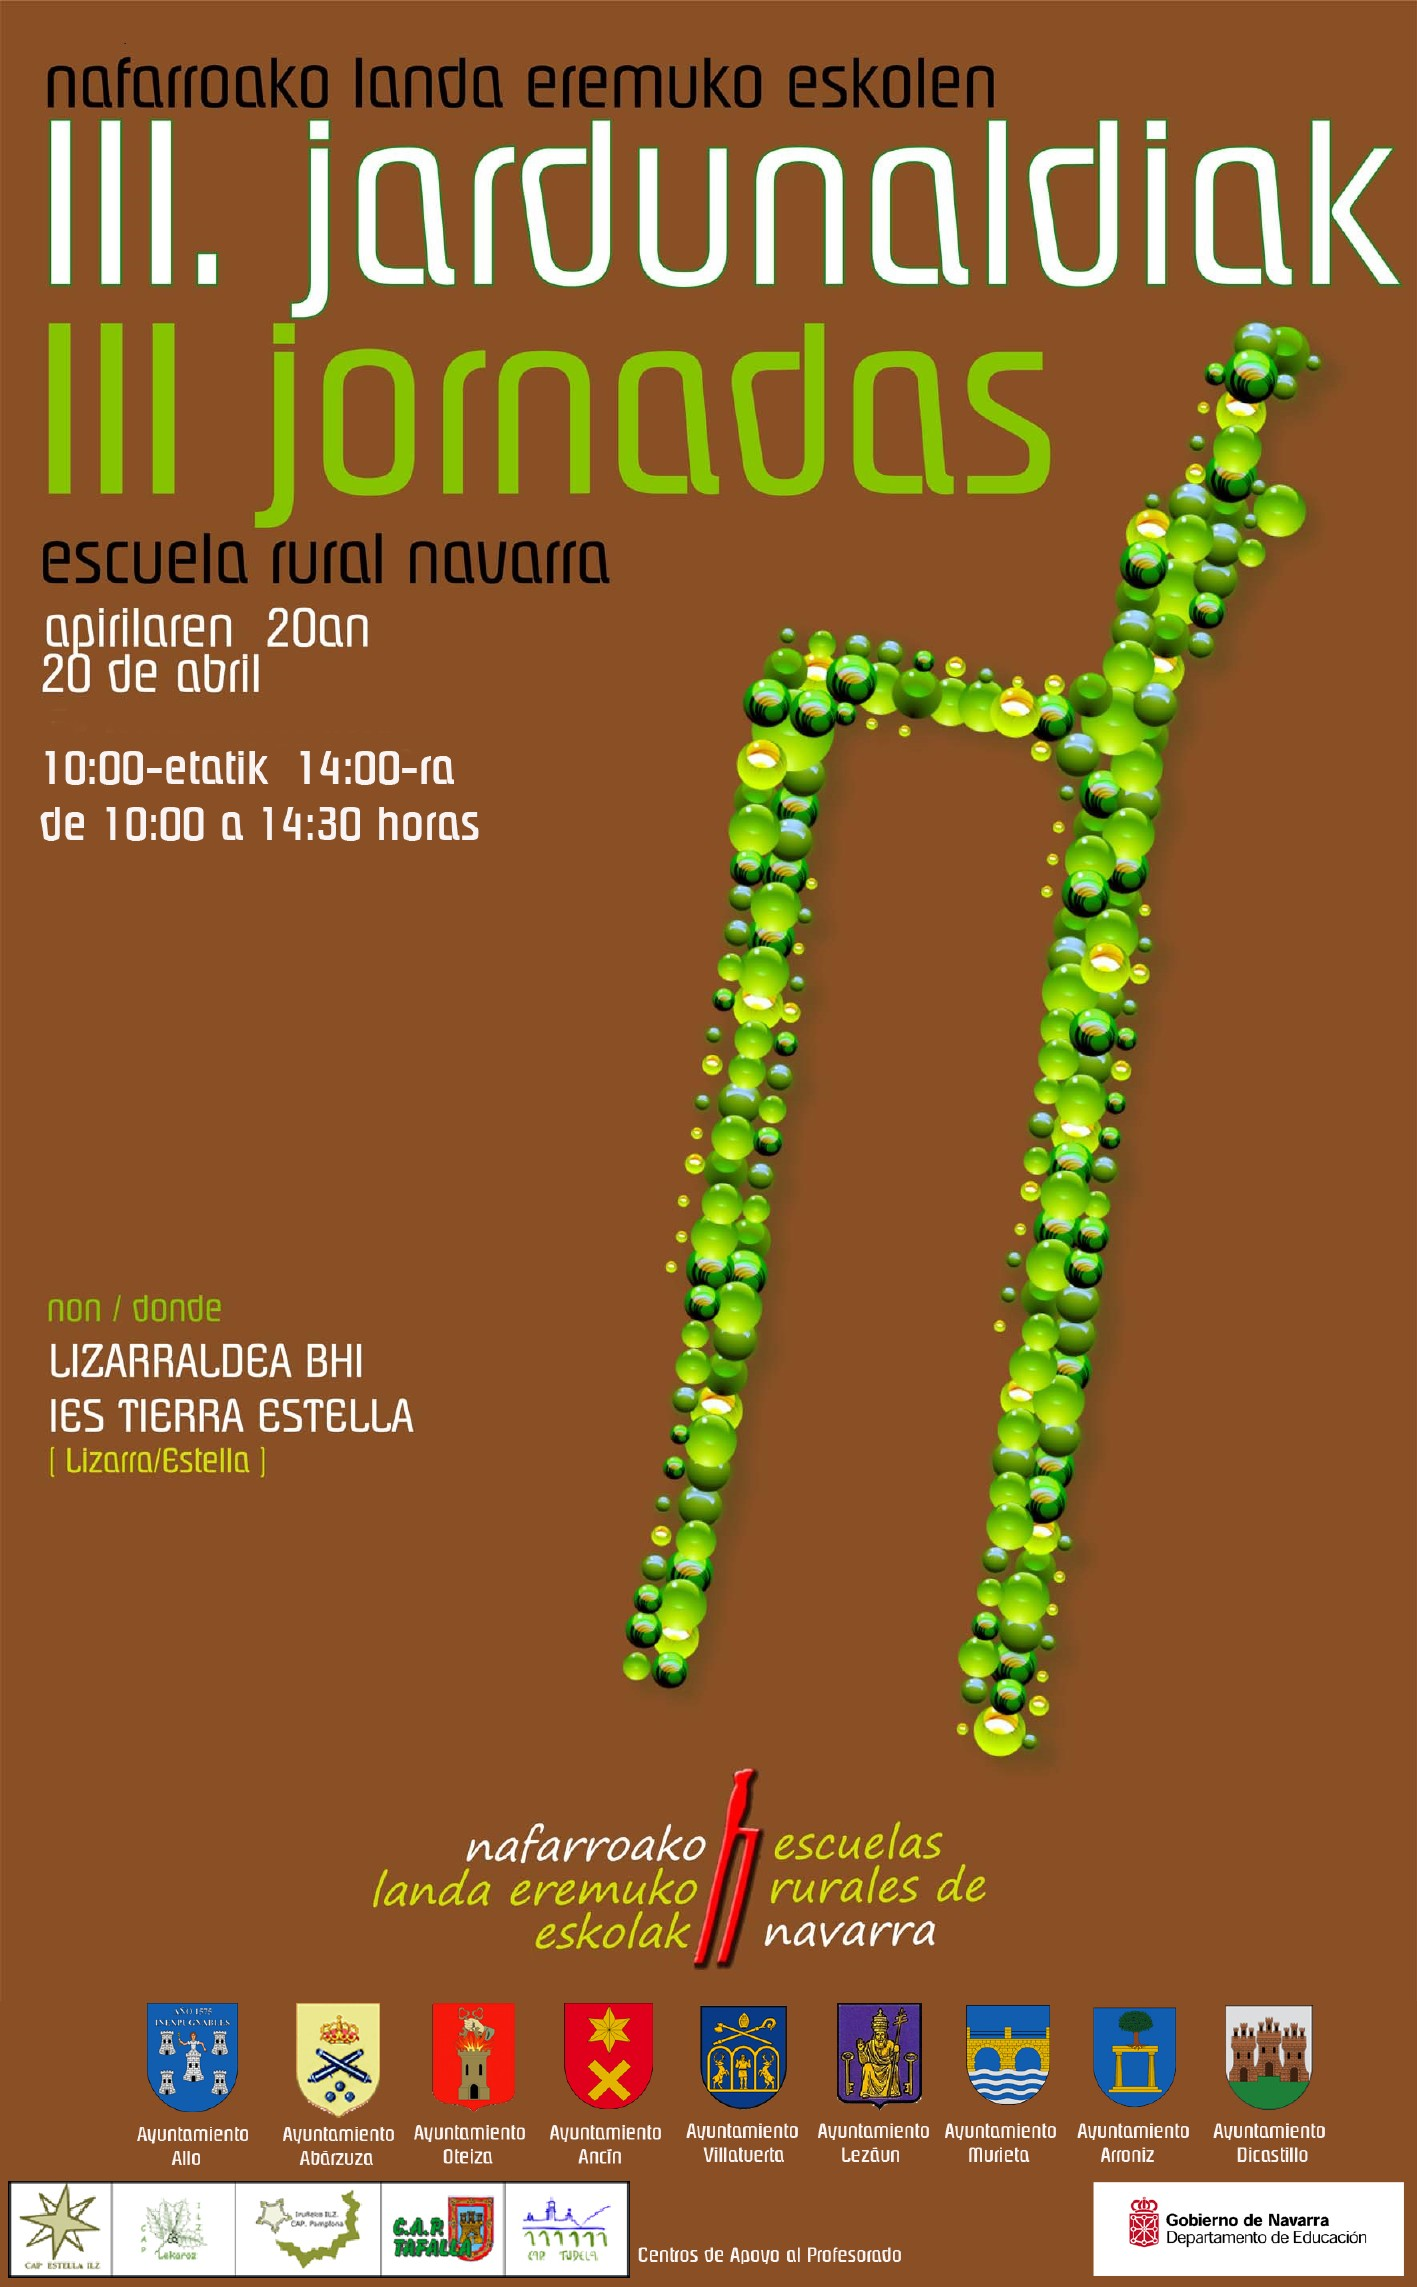 resized_Cartel jornadas